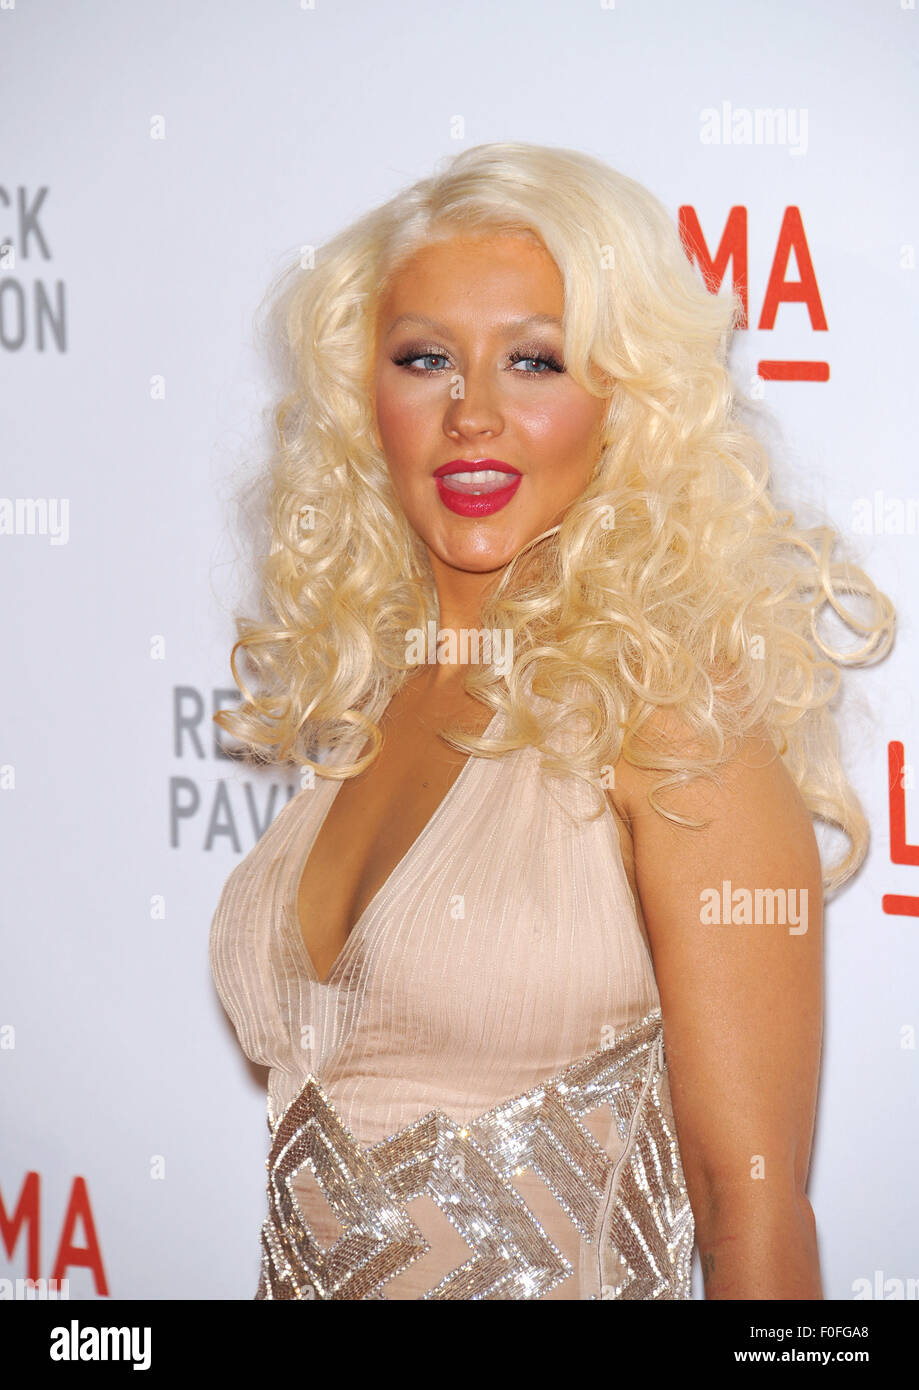 Watch 25. Christina Aguilera video